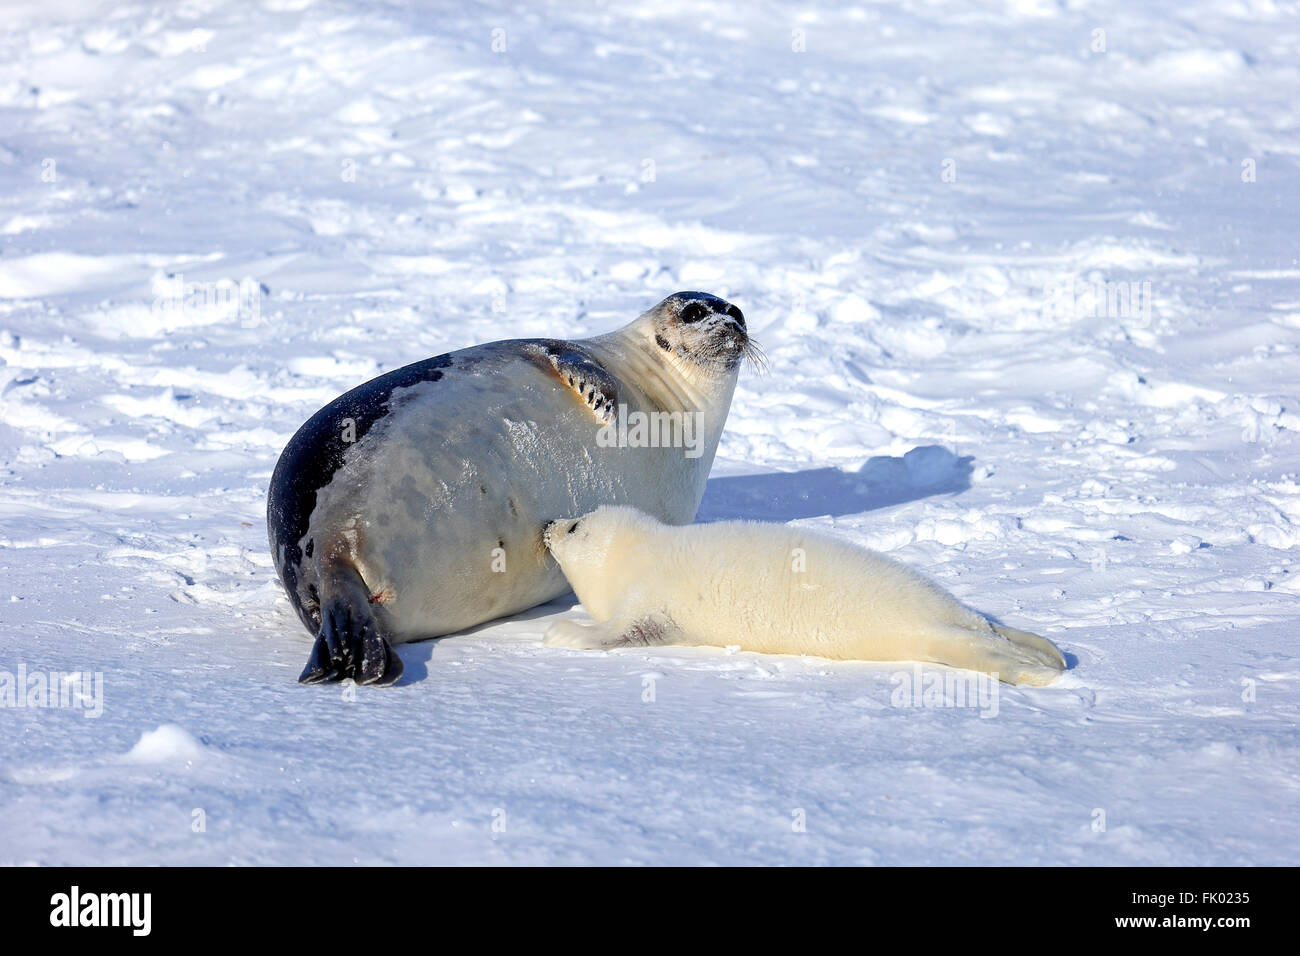 Canada Raises Quota For Controversial Seal Hunt Photos and Images ...